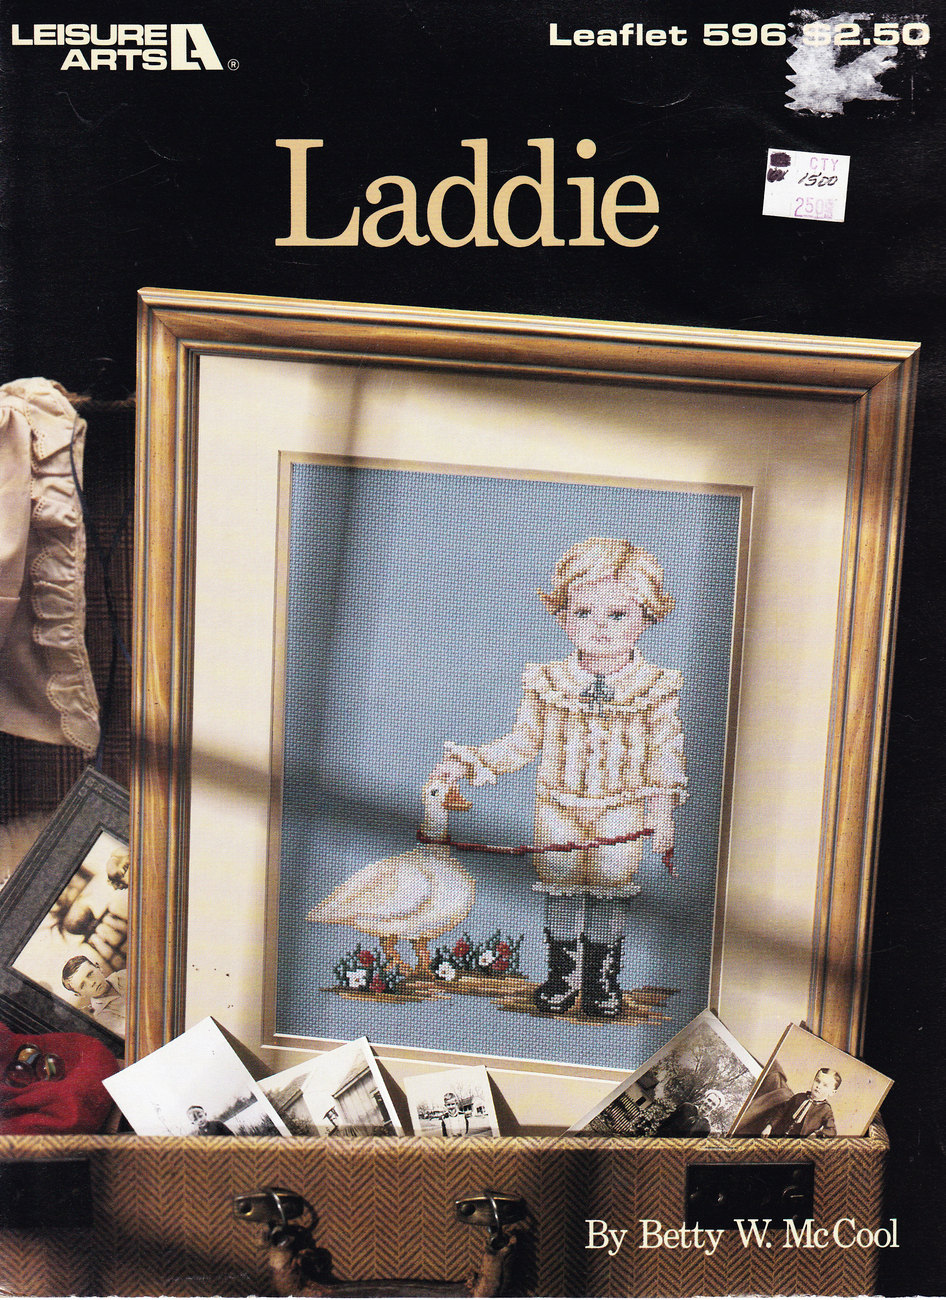 Primary image for CROSS STITCH LADDIE  LEISURE ARTS 596 BOY WITH DUCK GOOSE NOS